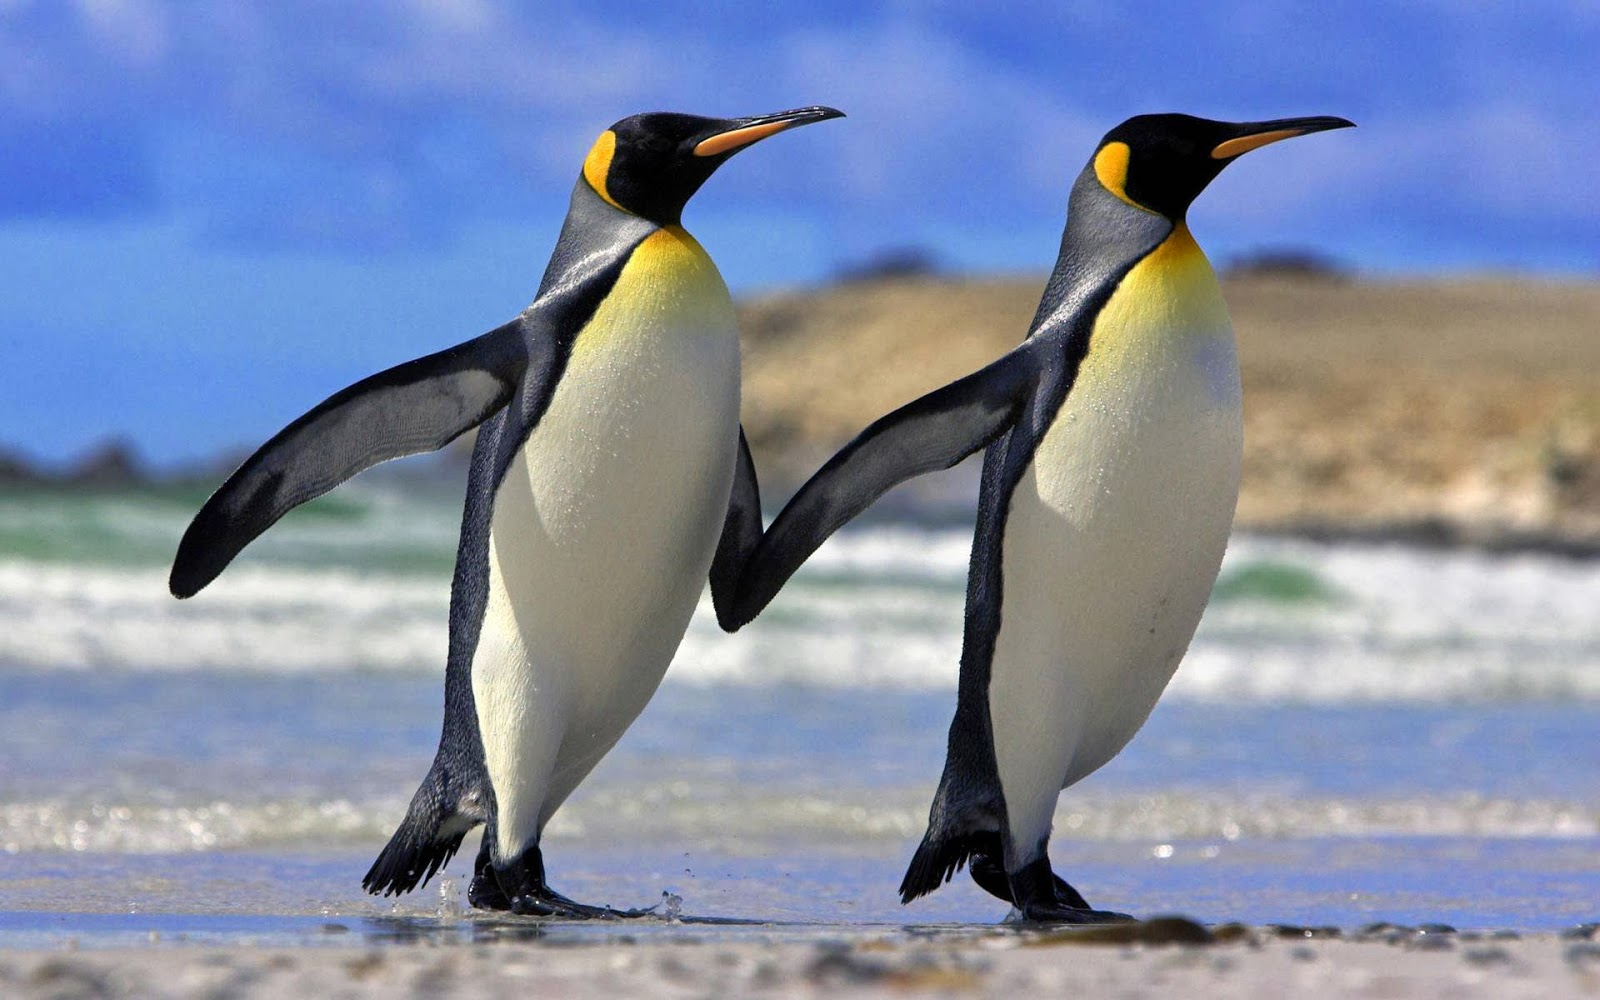 Wallpapers 4 u Download Cute Beautiful Penguin HD Wallpaper 1600x1000